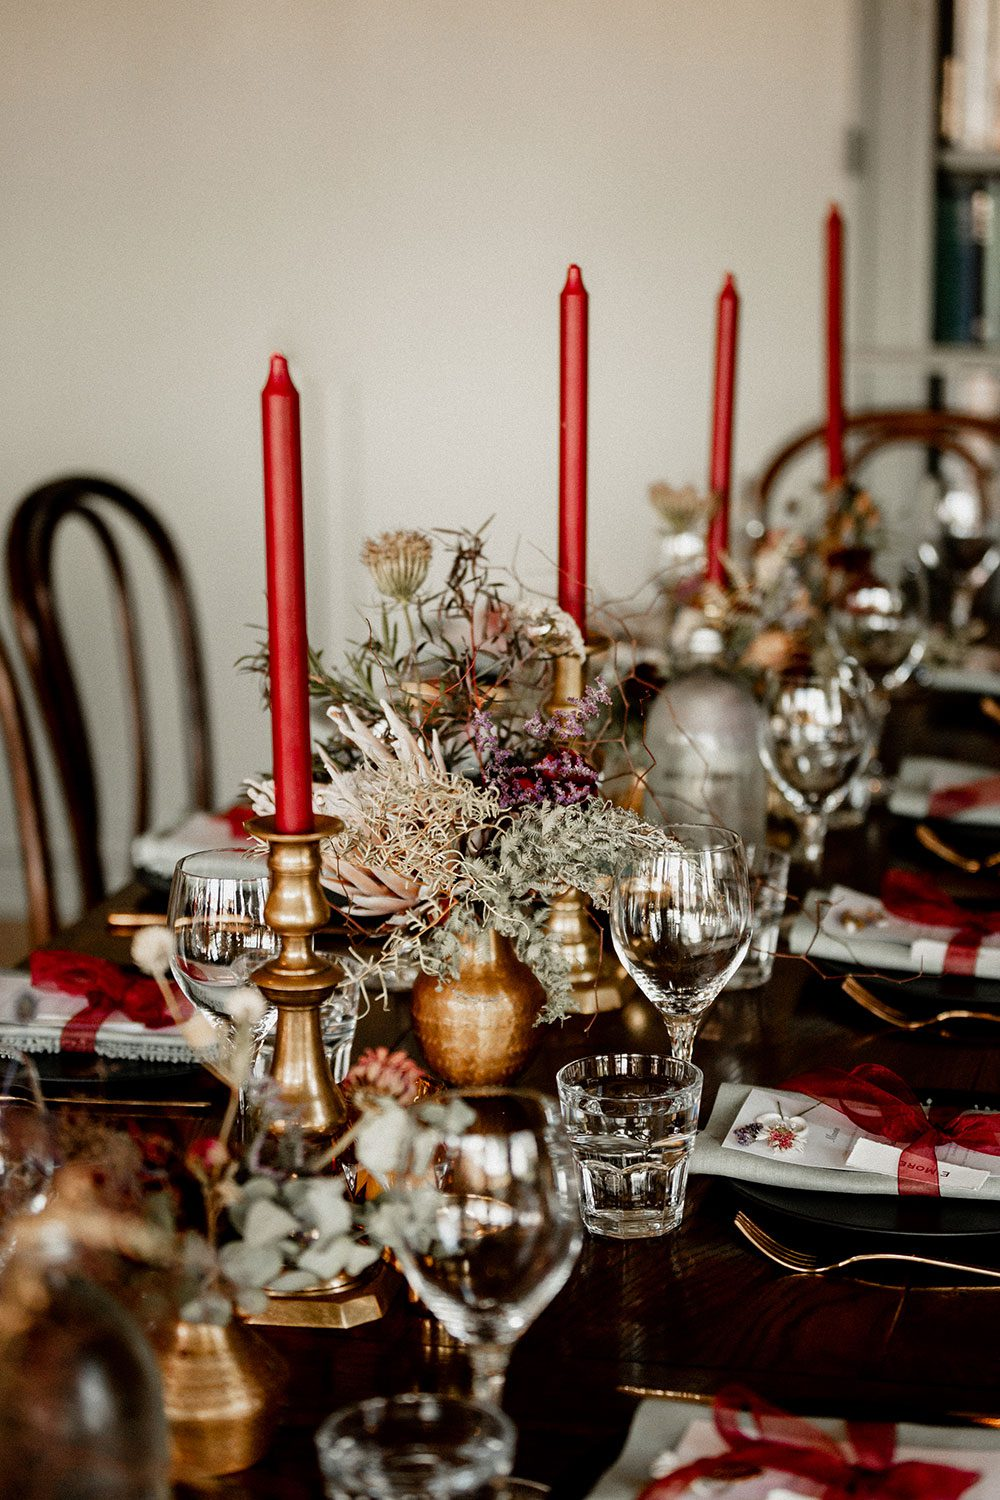 Emore and Hamish - Black Barn River Room place settings